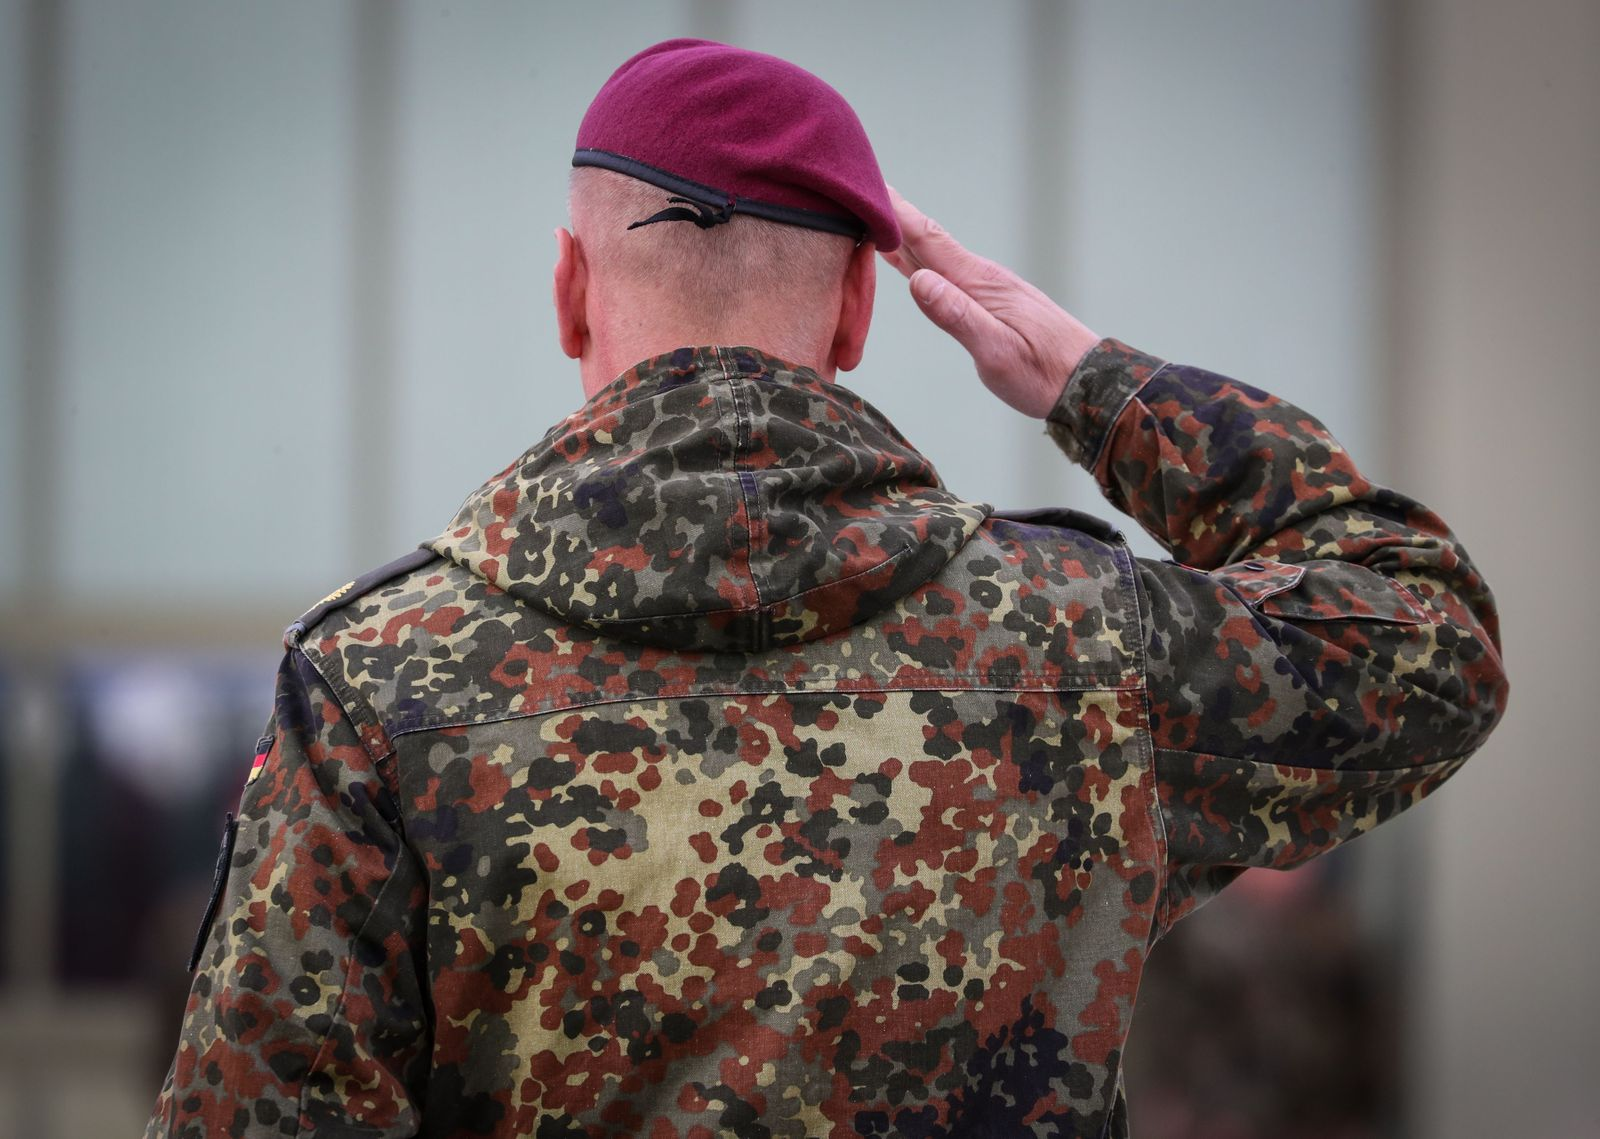 Farewell muster for 10th Germany Transport Helicopter Regiment, Fassberg - 16 Oct 2020